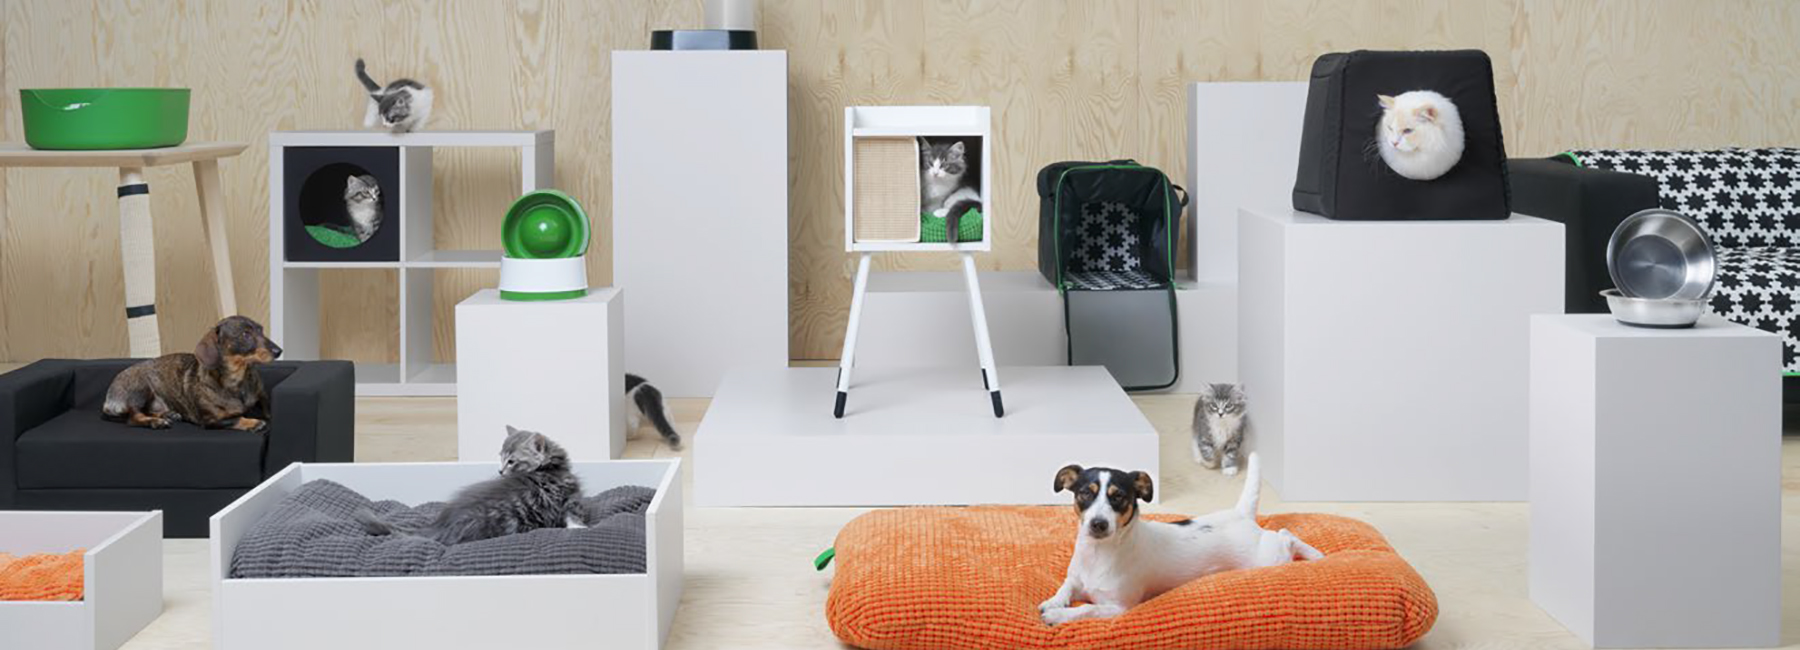 IKEA Is Rolling Out 'LURVIG' A Pet Furniture & Accessory Collection 3